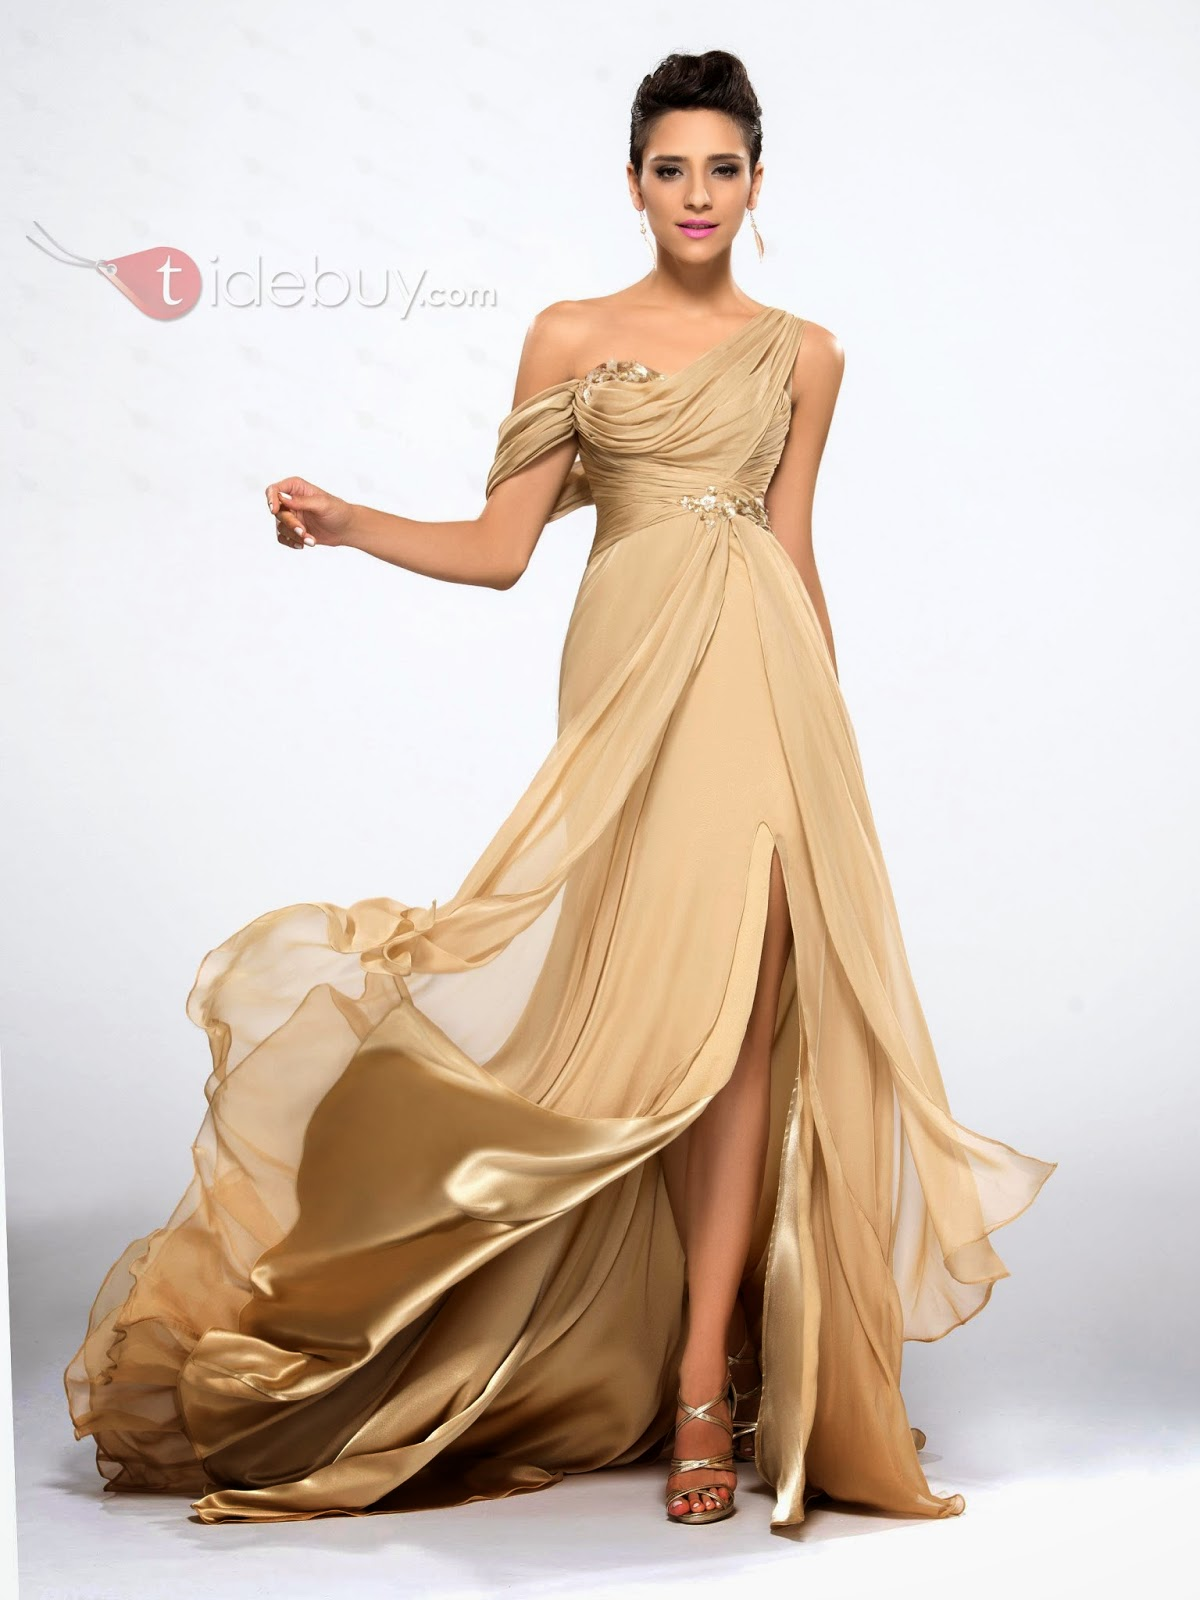 Celebrate in Designer Dresses